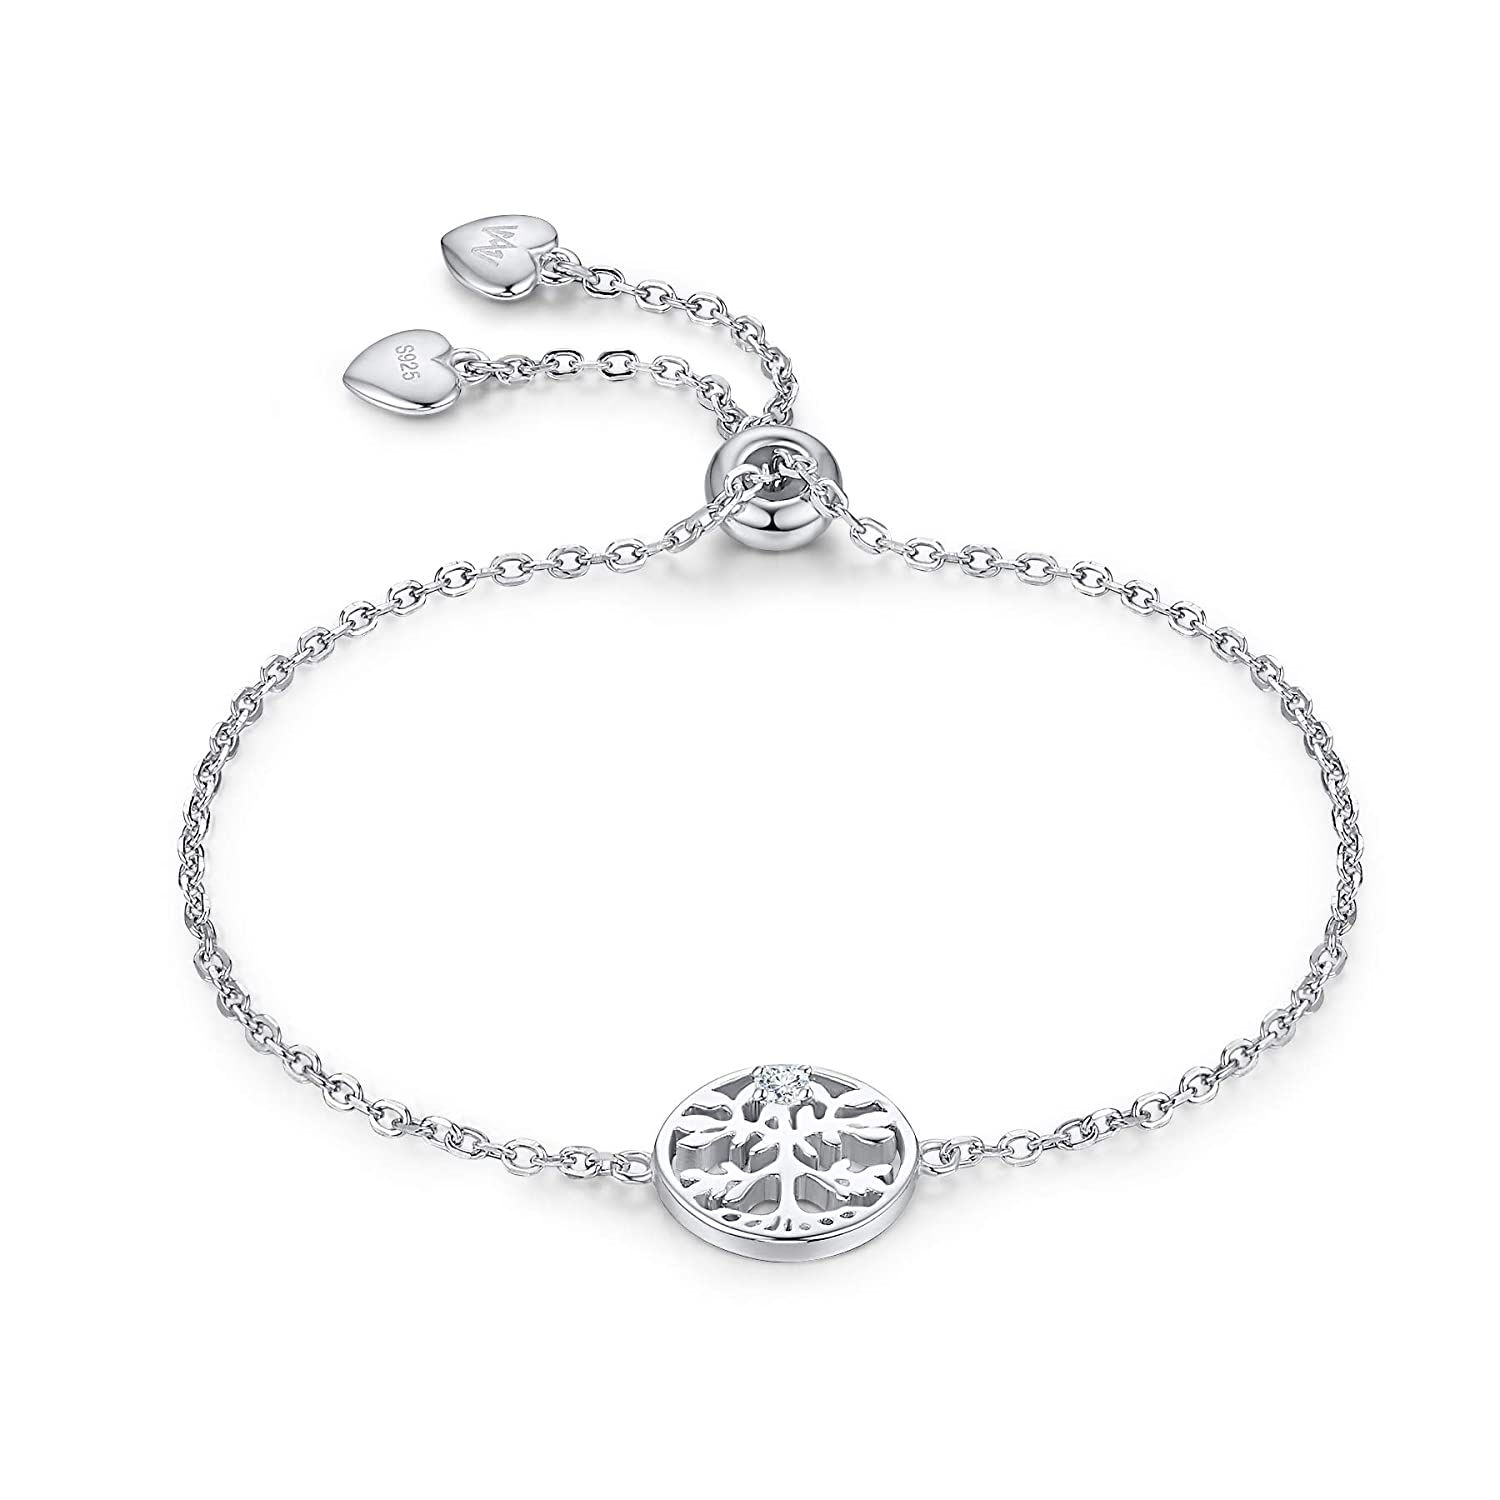 b725567f297b WISHMISS 925 Sterling Silver Tree of Life Charm Bracelet for Girl ...